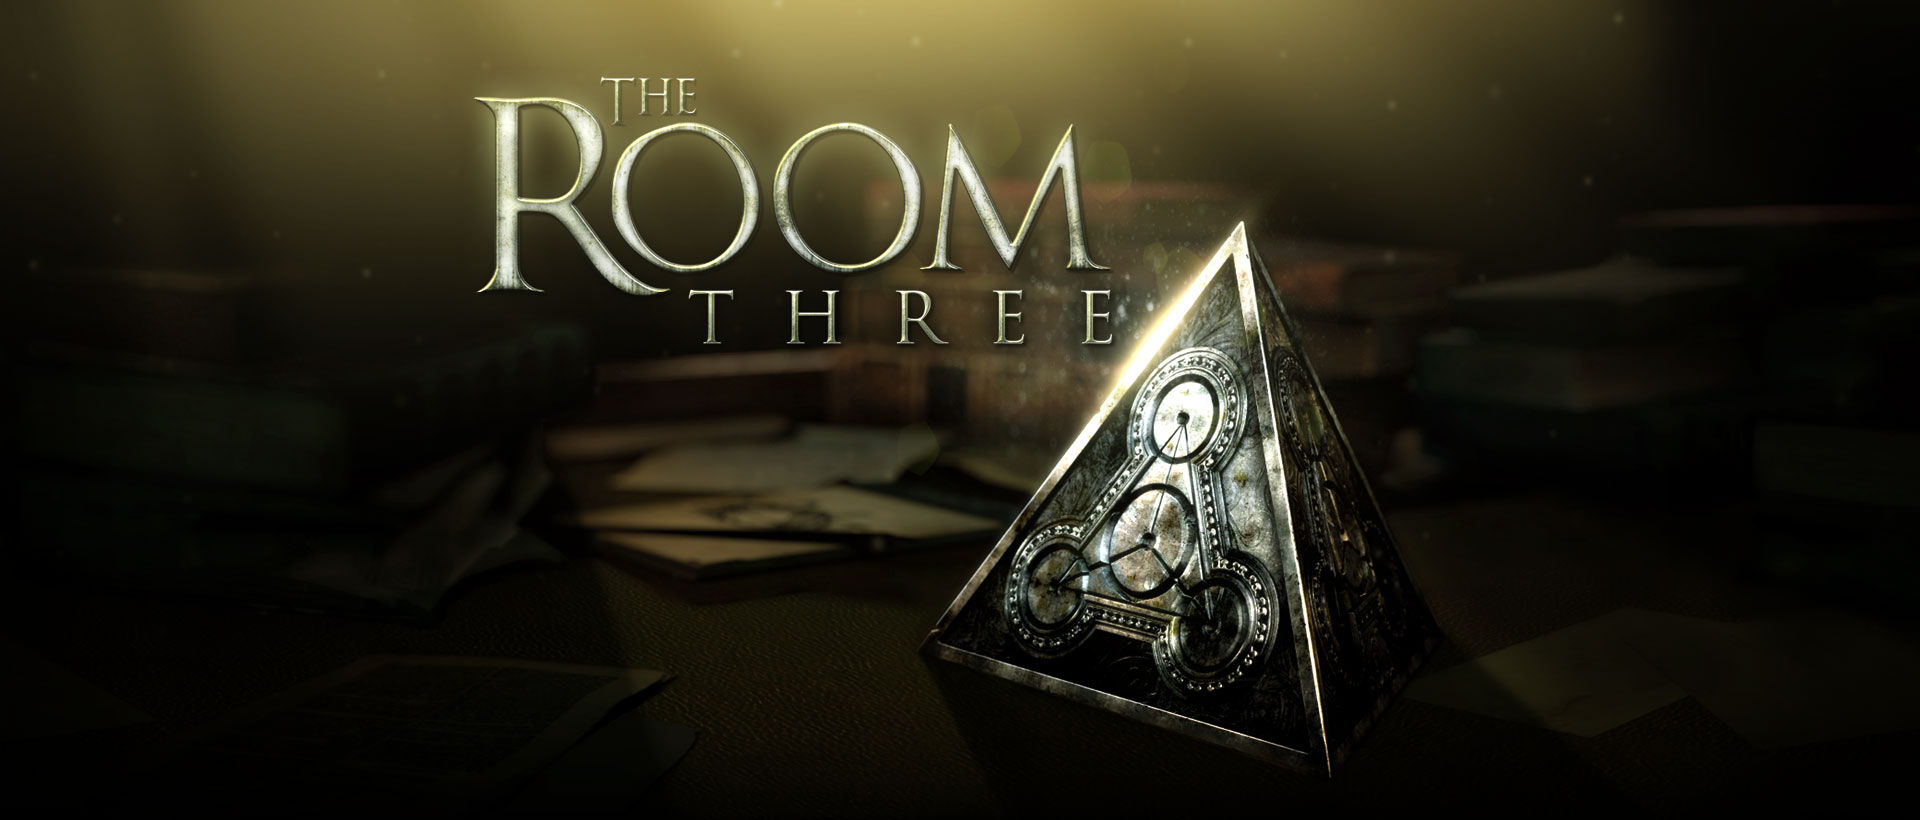 Modojo | Get The Room Three Right Now on iOS